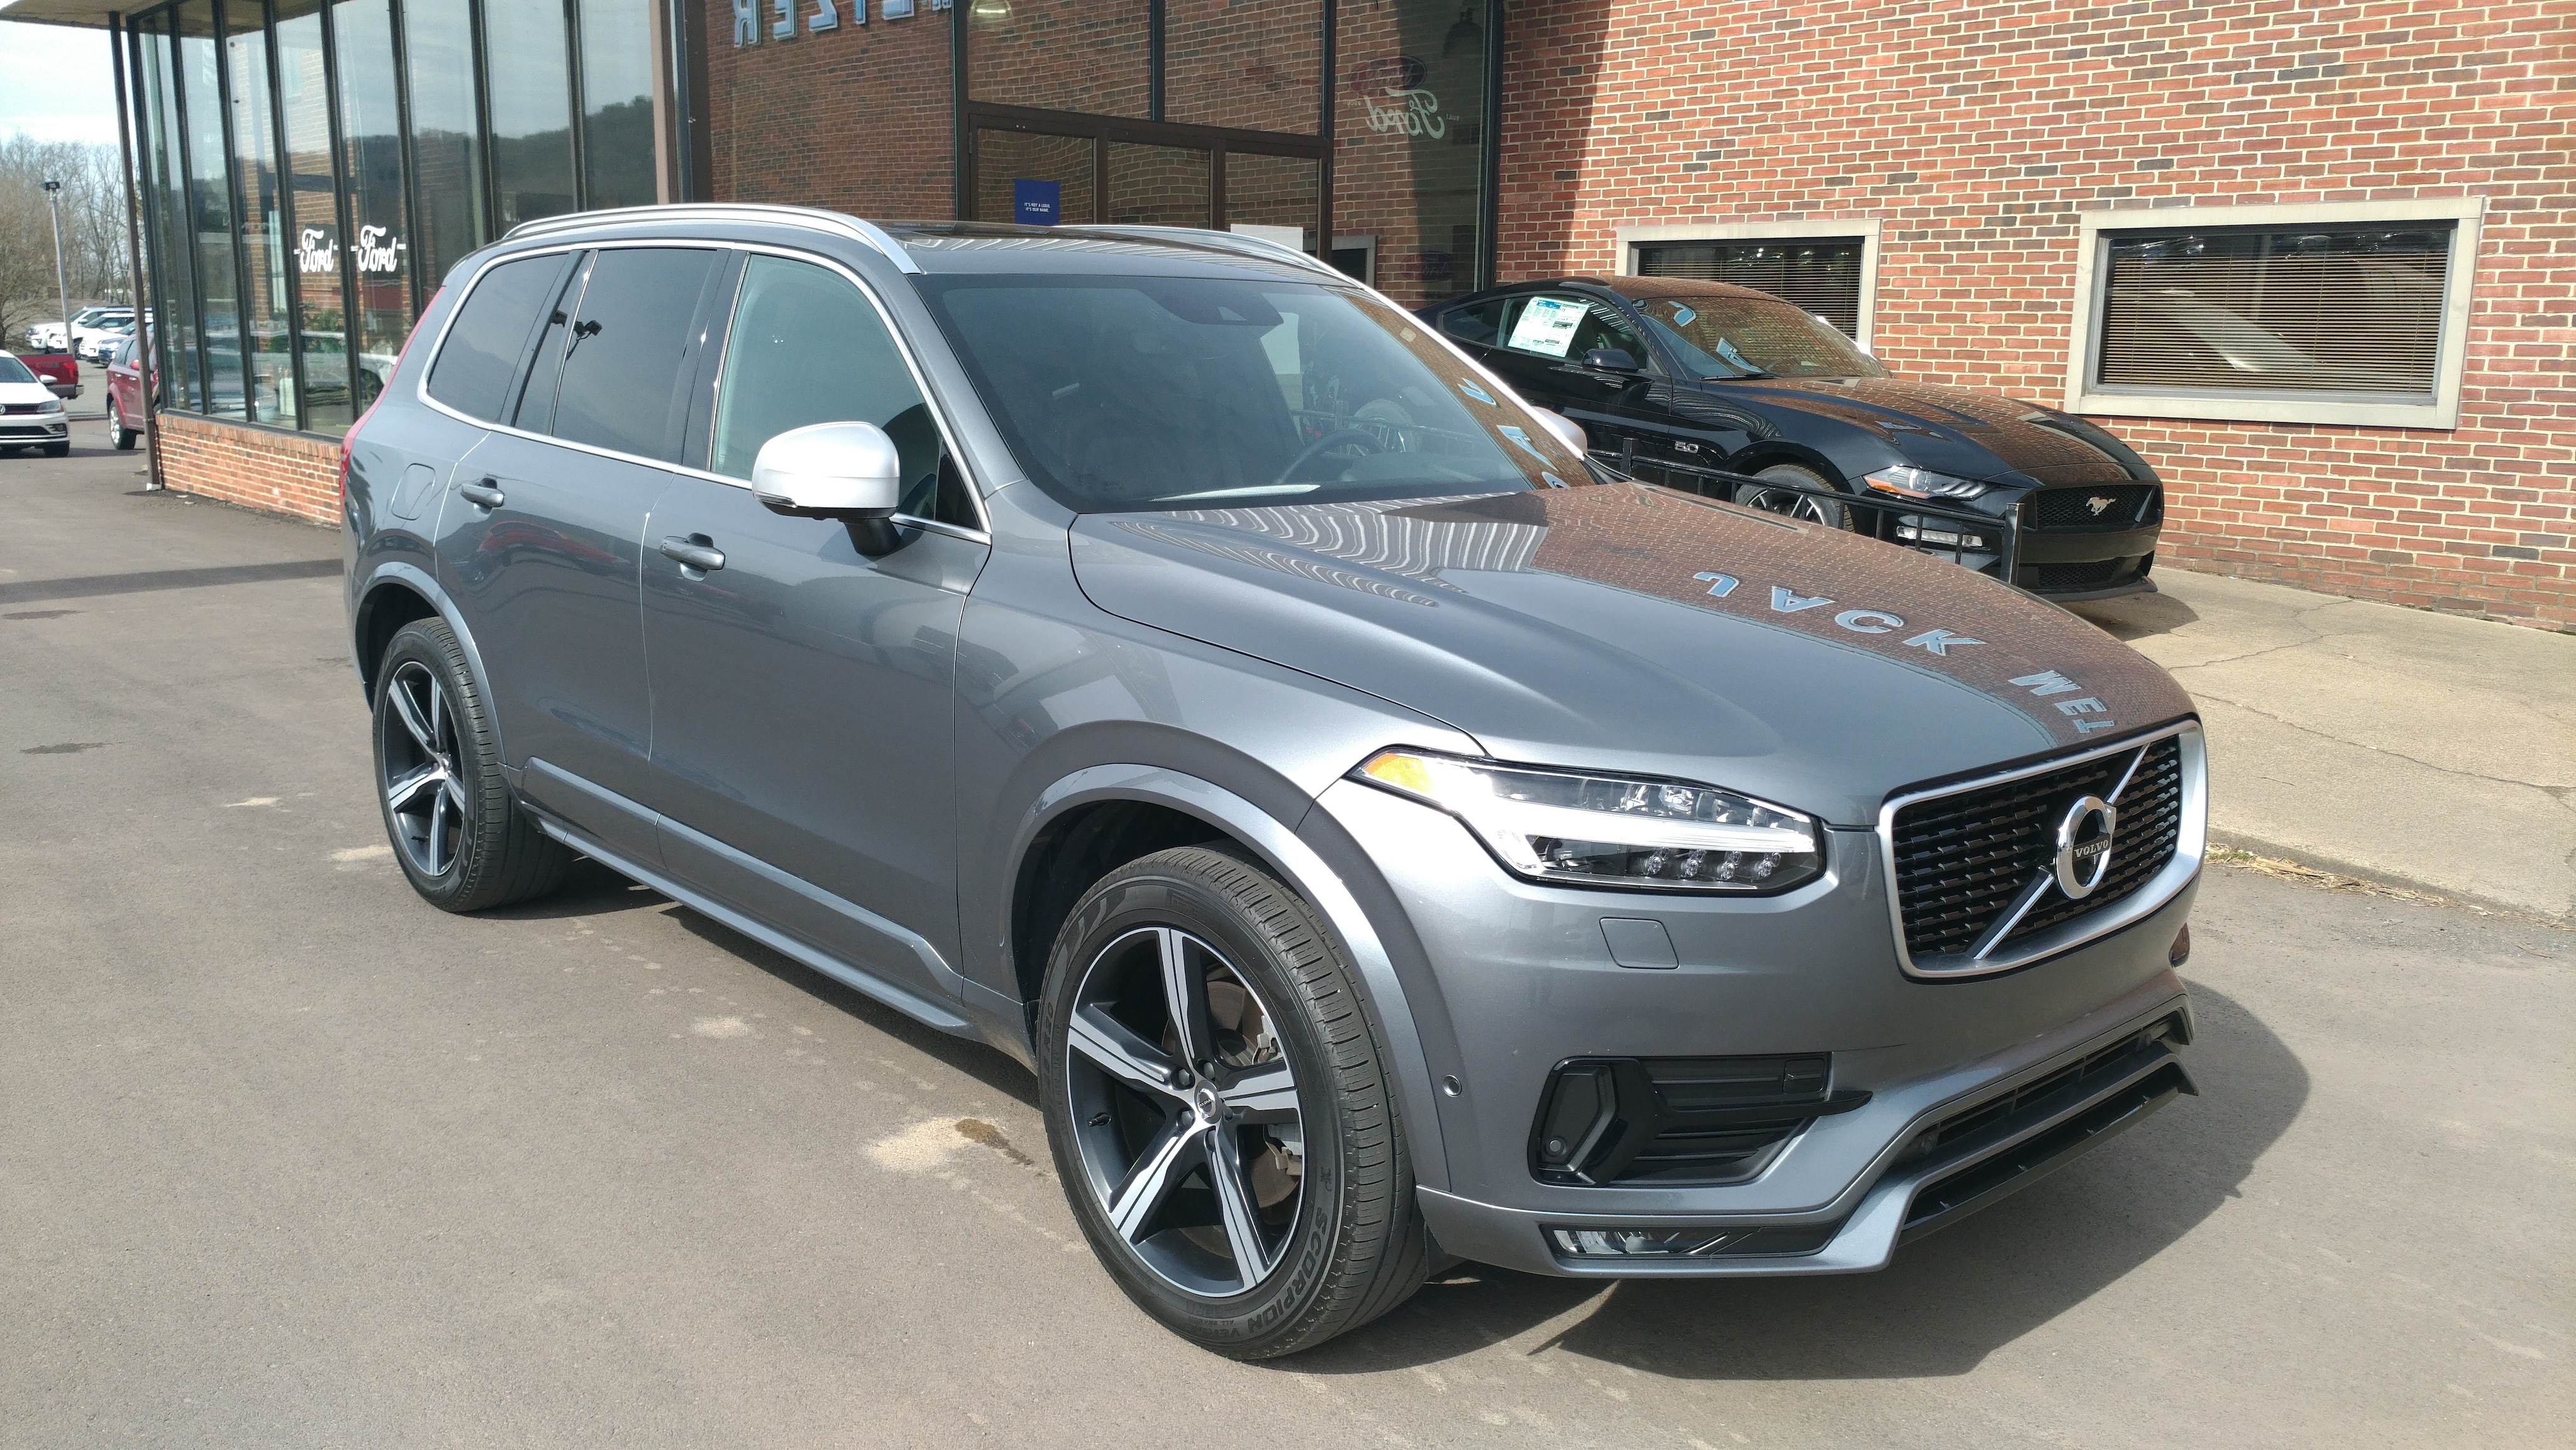 Used 2016 Volvo XC90 T6 R-Design AWD SUV for sale in Danville, PA